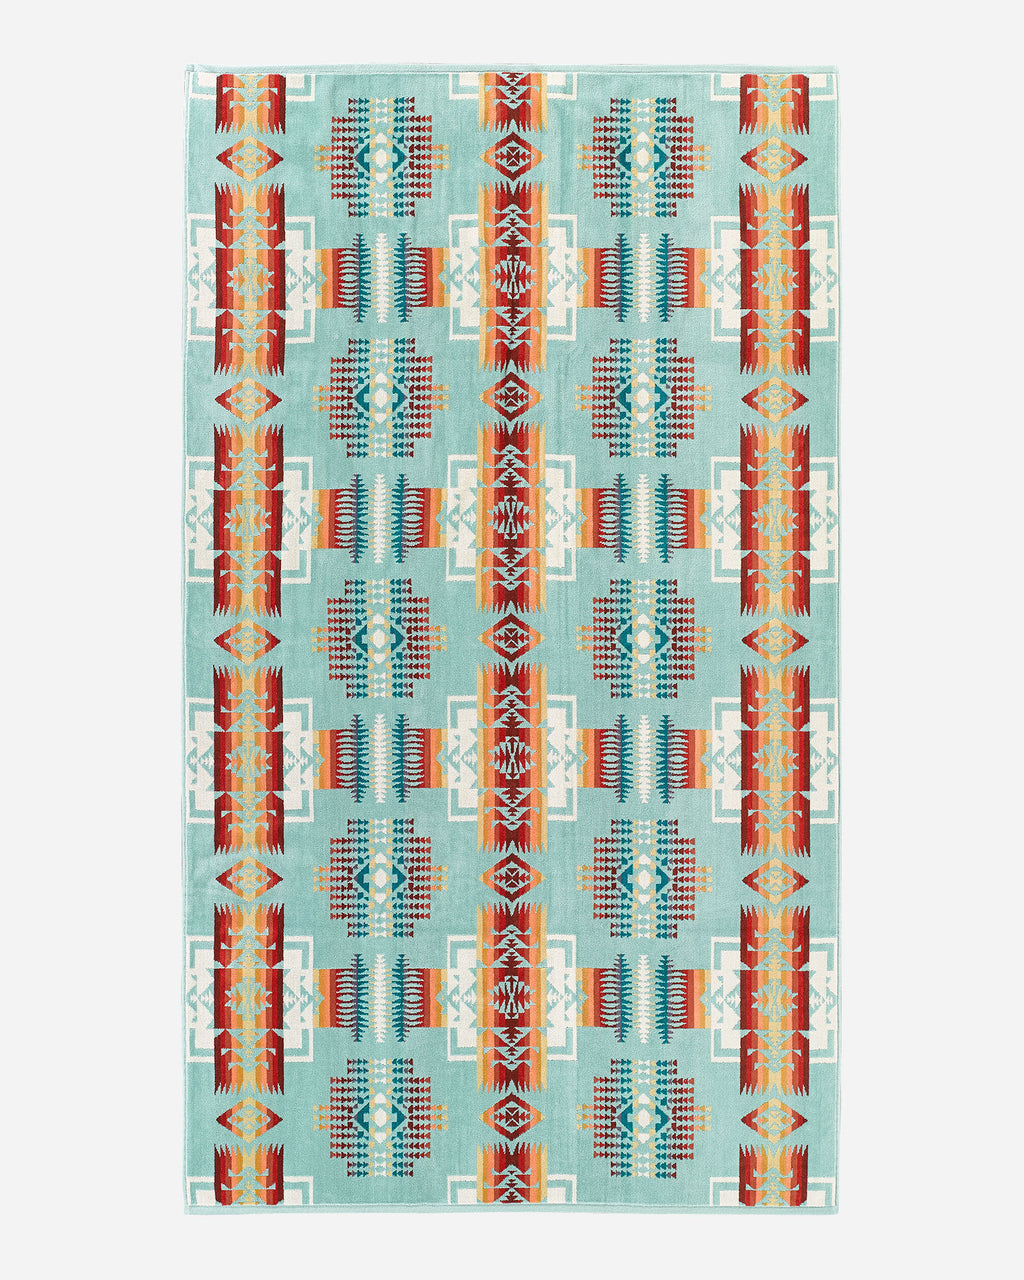 CHIEF JOSEPH SPA TOWEL - AQUA - Tankfarm & Co.